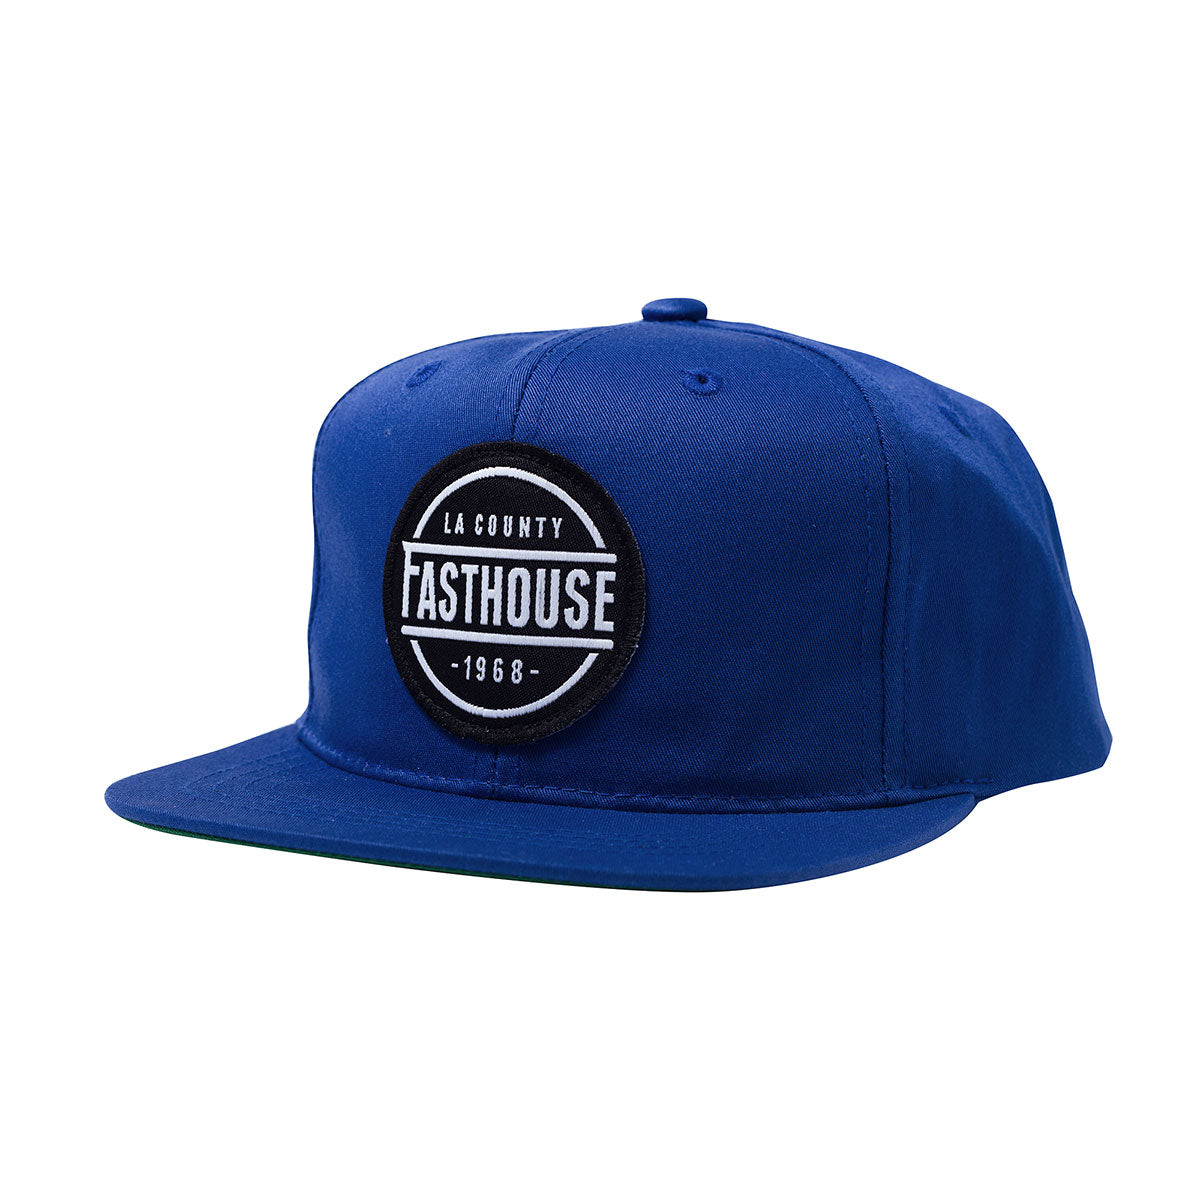 Fasthouse - LA County Youth Hat- Royal Blue